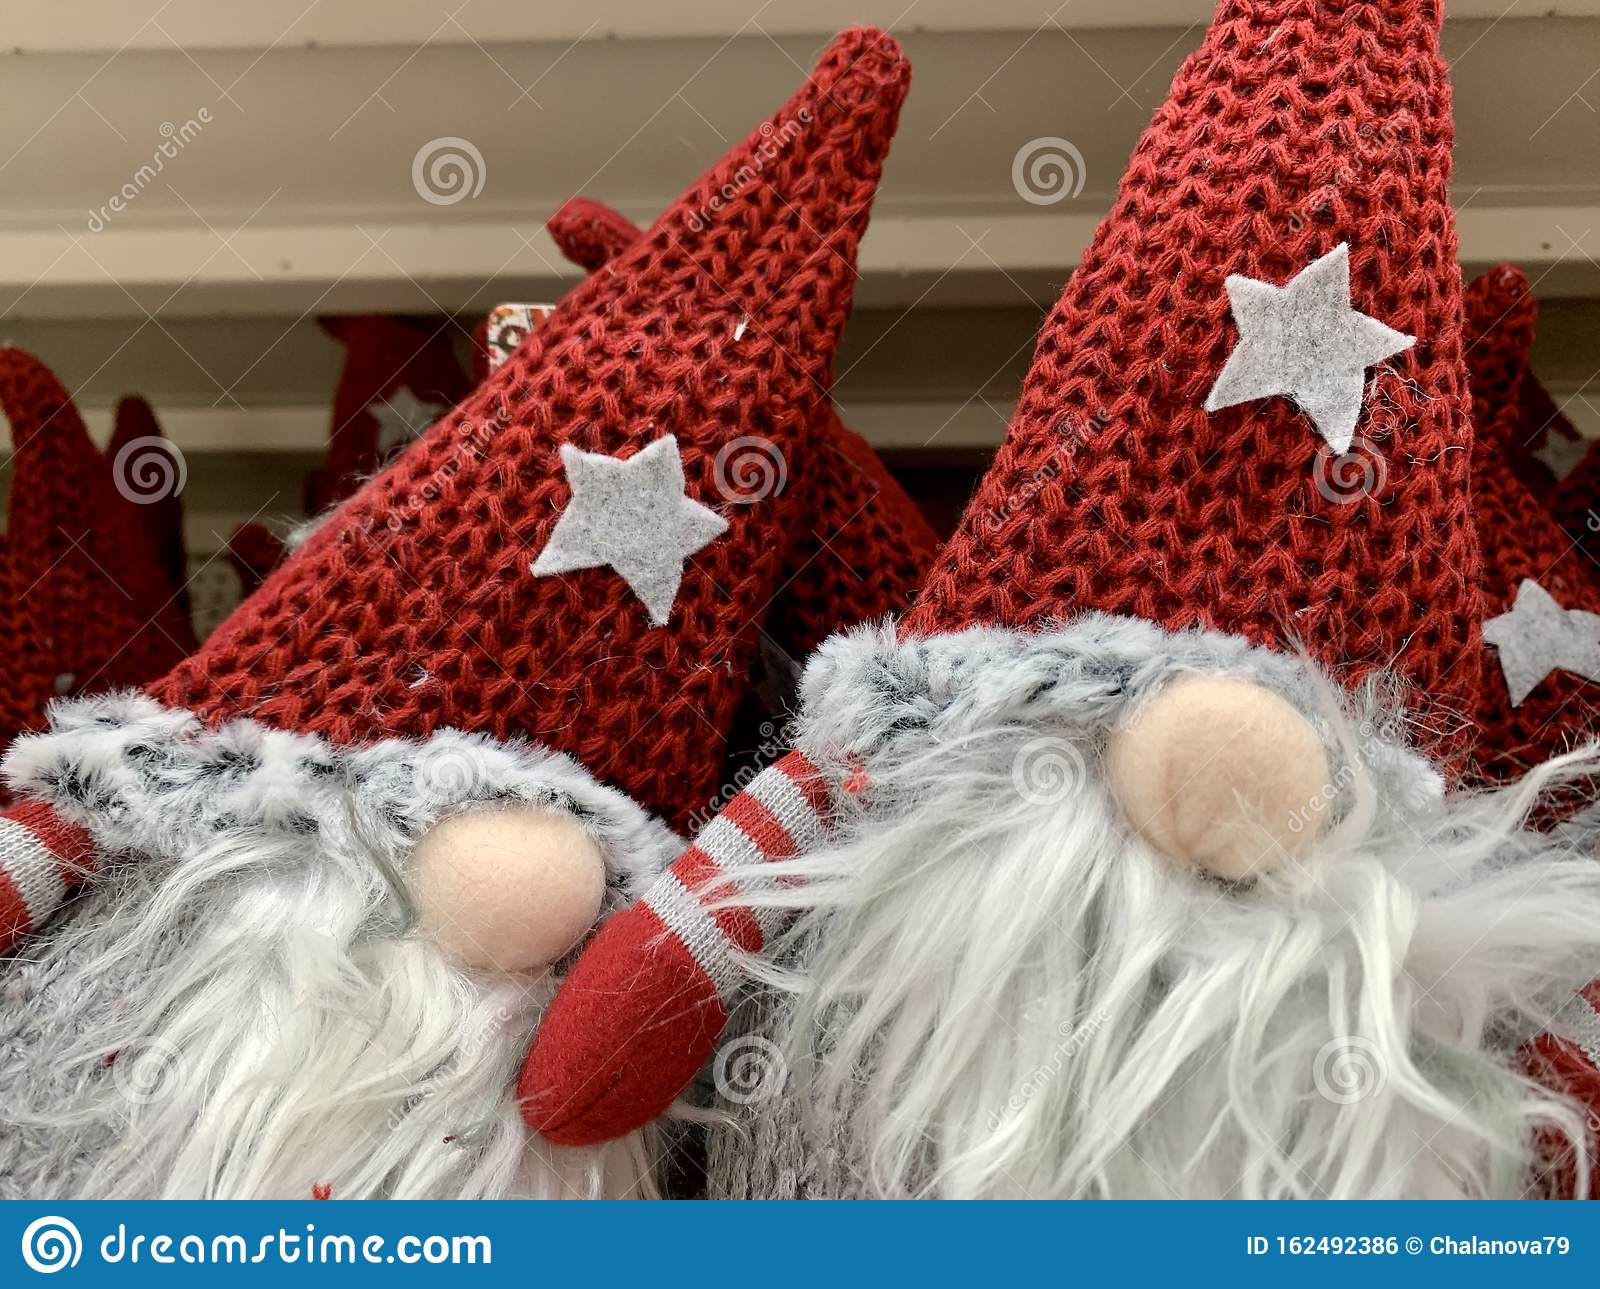 Scandinavian Gnome In Red Hat Decorative Christmas Toy In The Supermarket Nobody Pair Stock Photo Image Of Handmade Magician 162492386